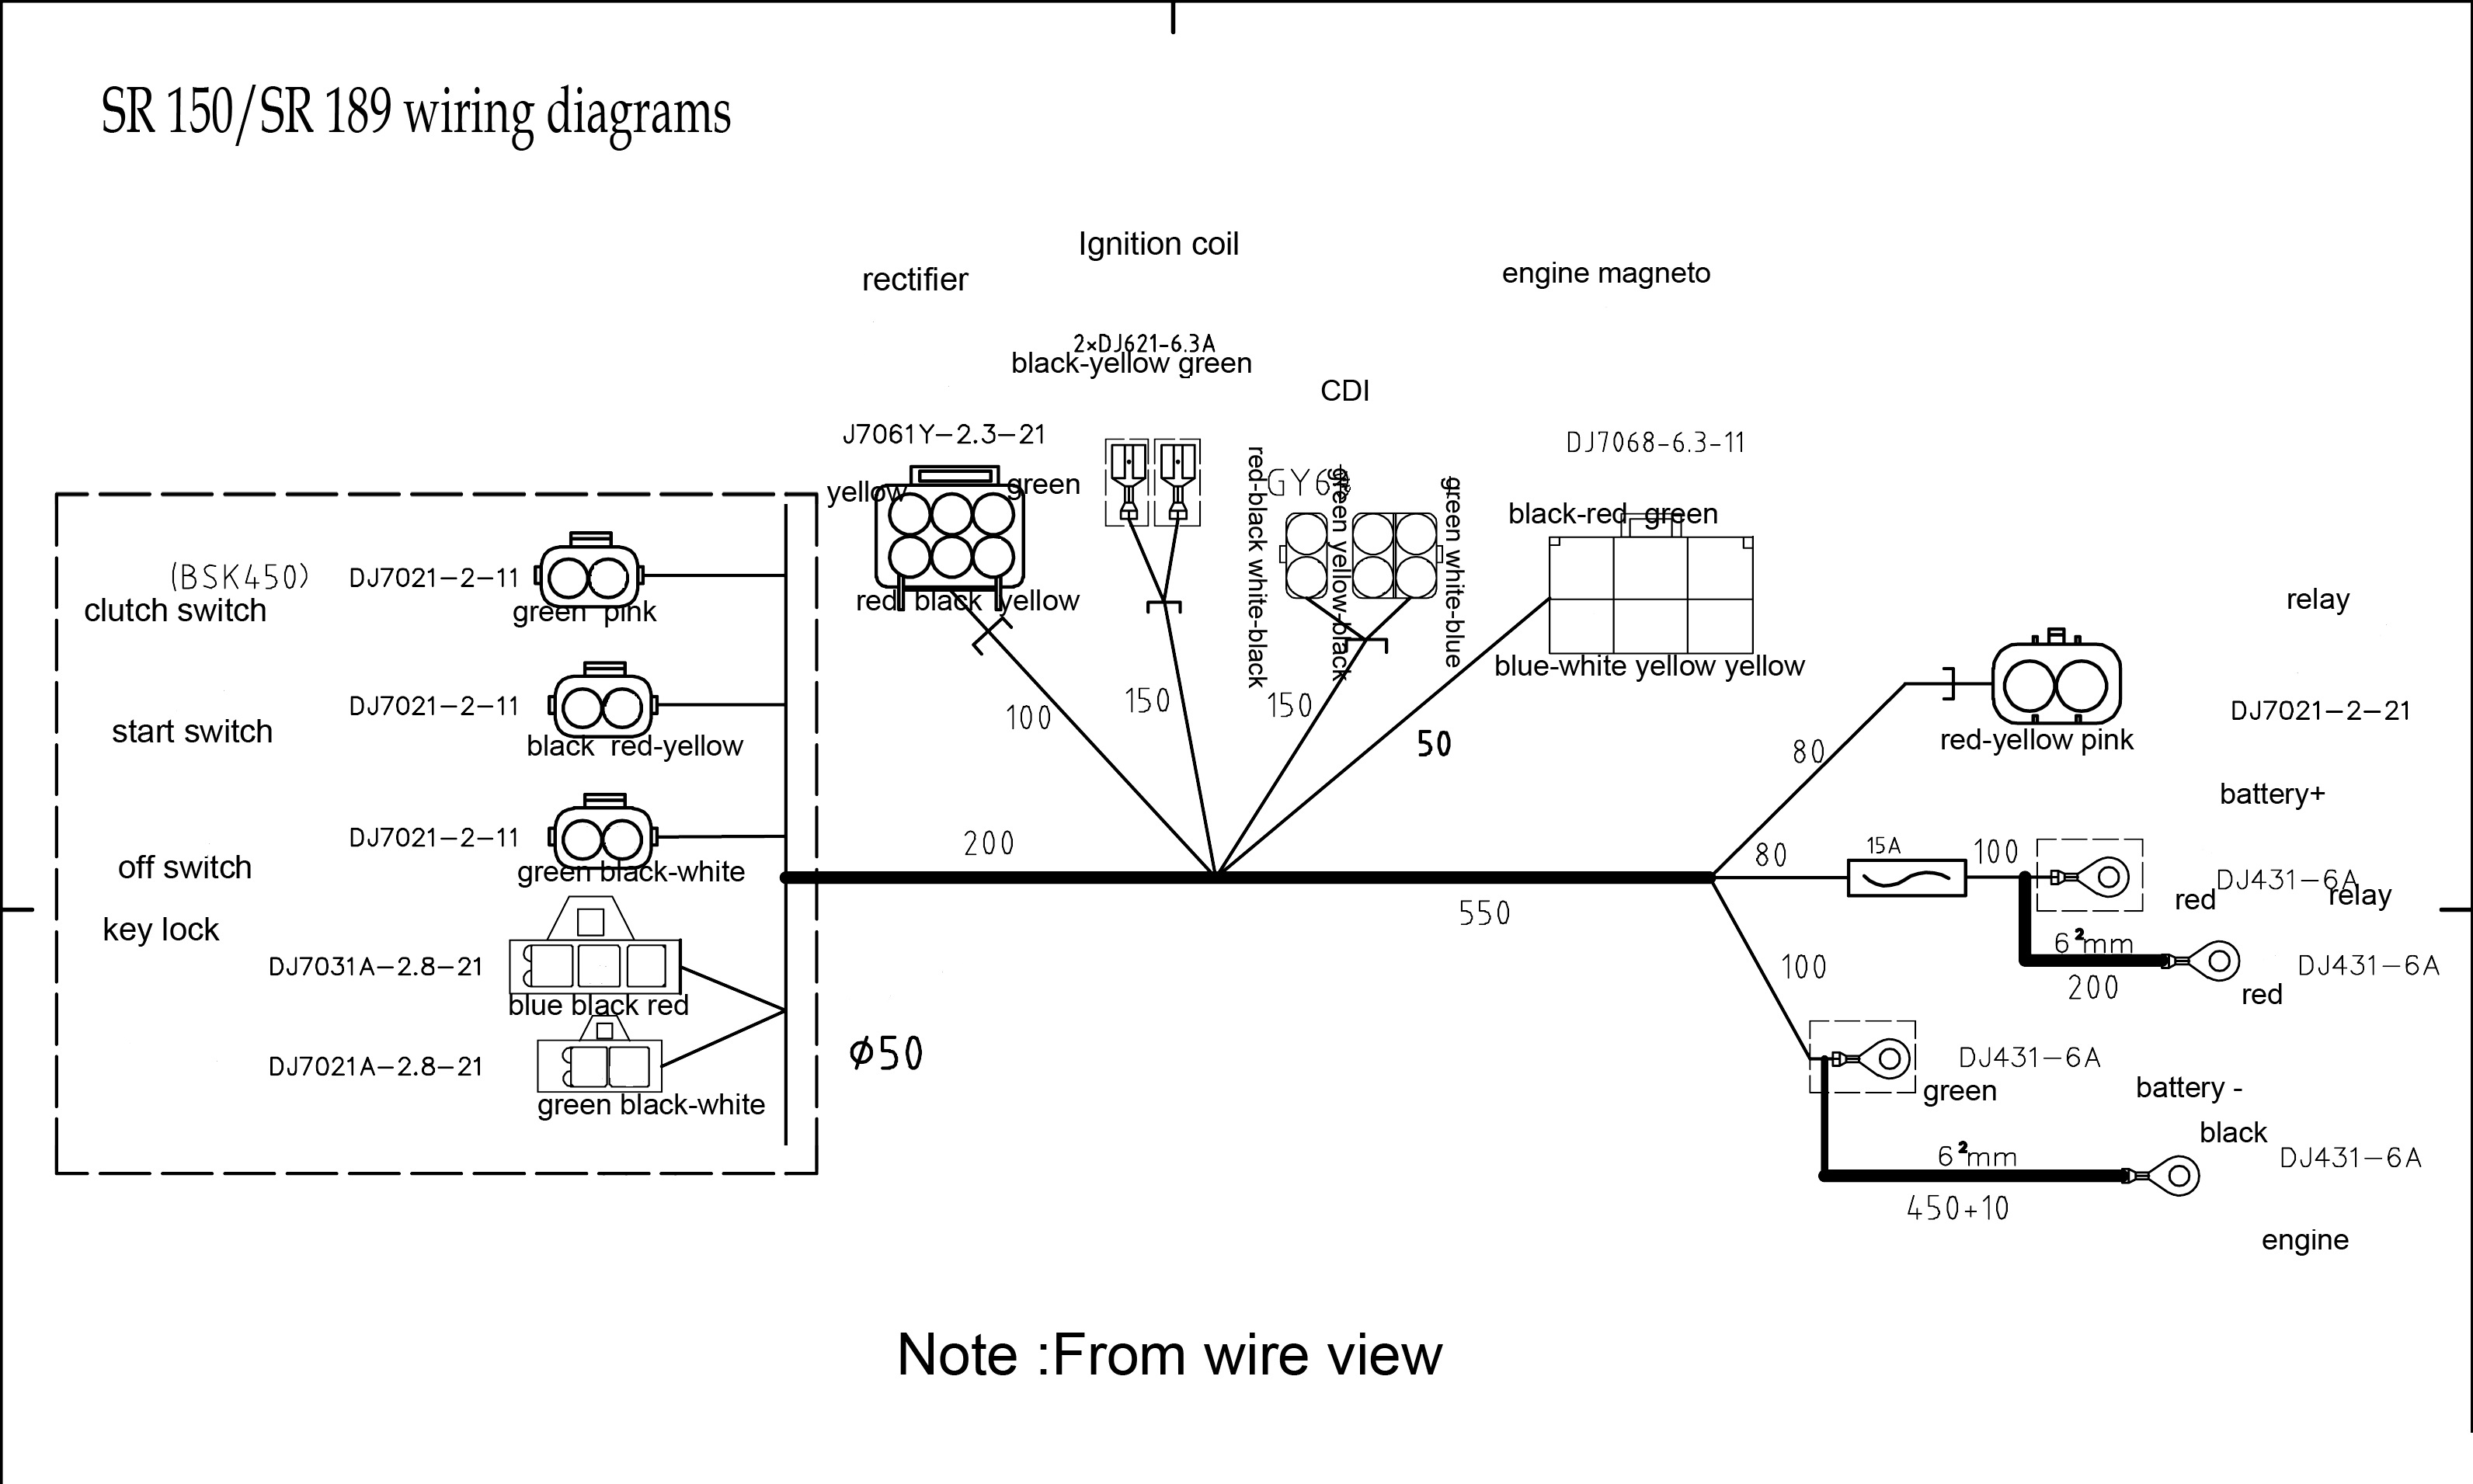 Wire Diagram on car wiring diagram, basic harley wiring diagram, electric bike controller wiring diagram, space invaders wiring diagram, atv wiring diagram, pacman wiring diagram, helicopter wiring diagram, scooter wiring diagram, motorcycle wiring diagram, van wiring diagram, trailer wiring diagram, dirt bike wiring diagram, jeep wrangler wiring diagram, 12 volt battery wiring diagram,